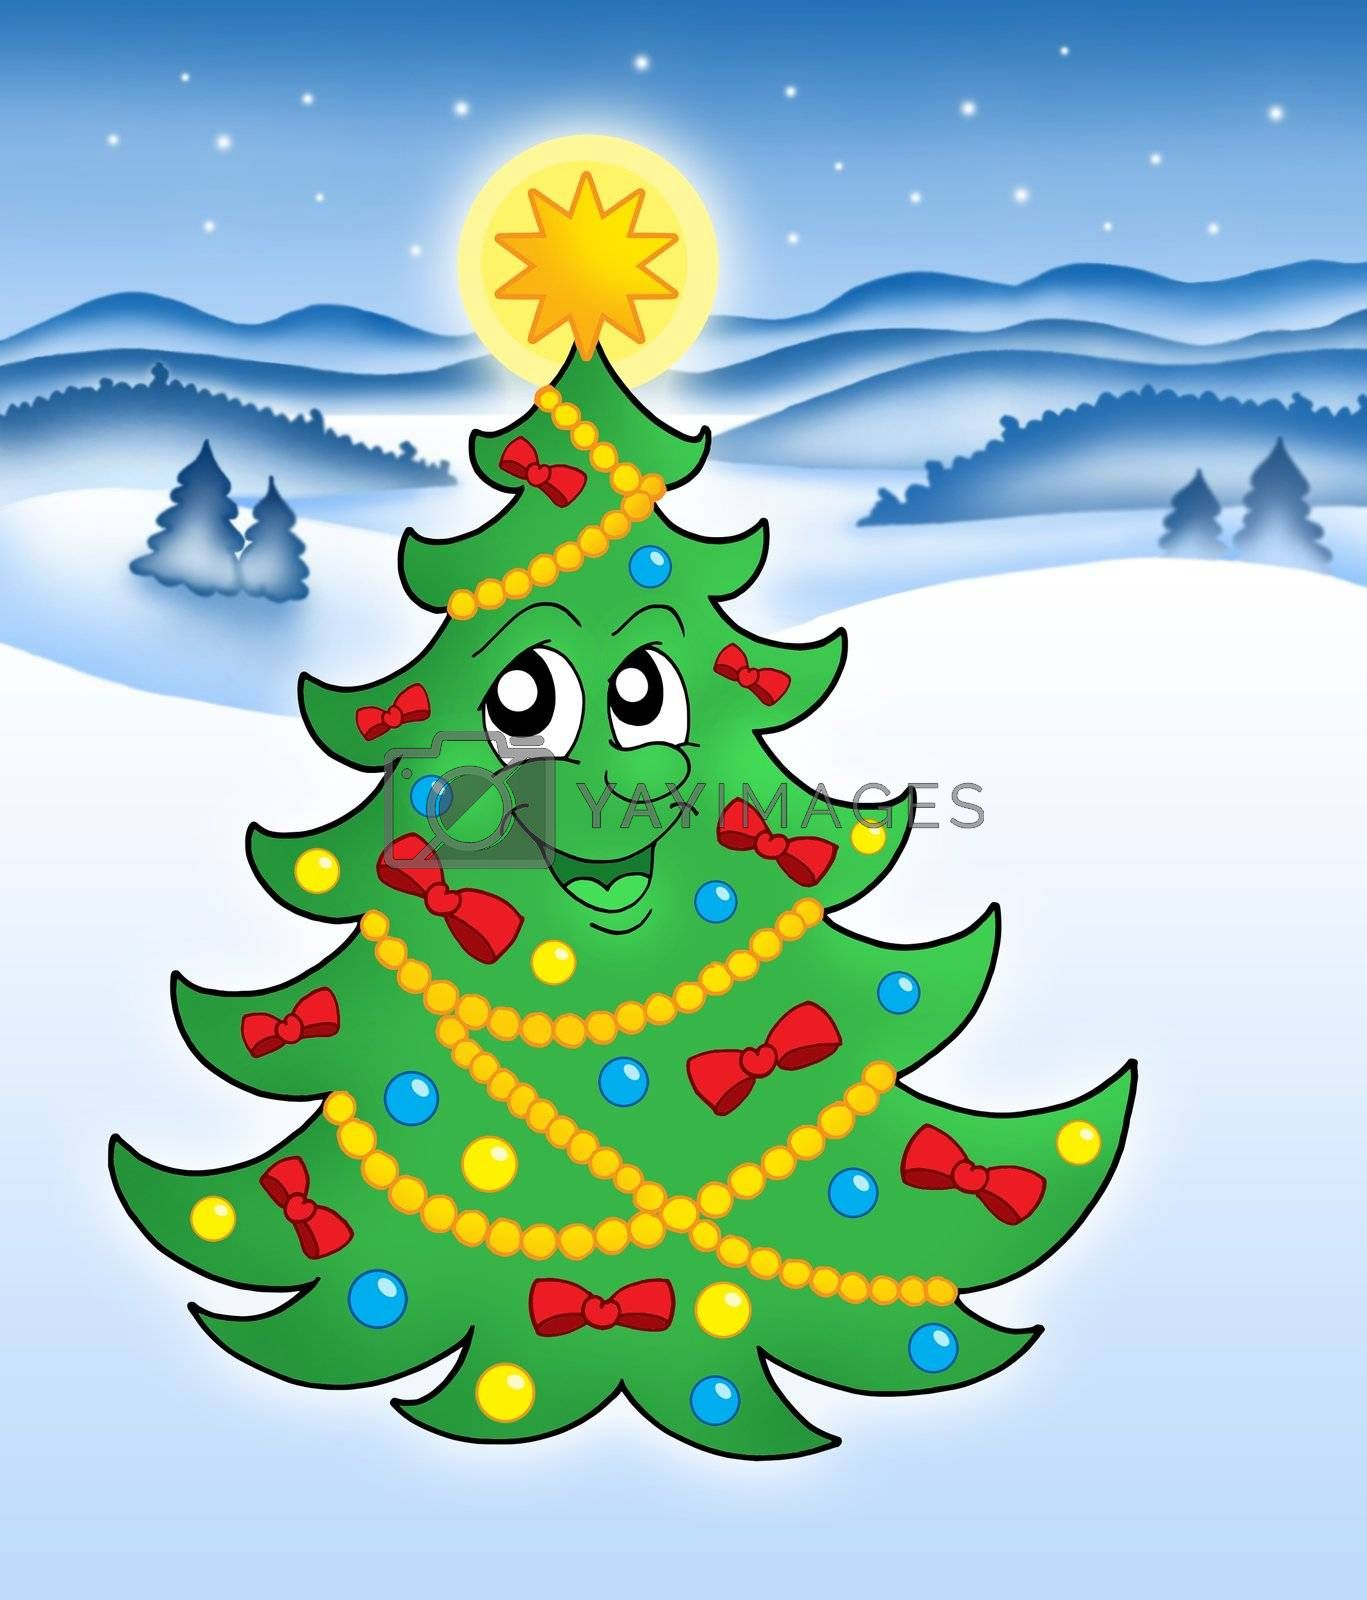 Cute Christmas tree in snowy landscape - color illustration.